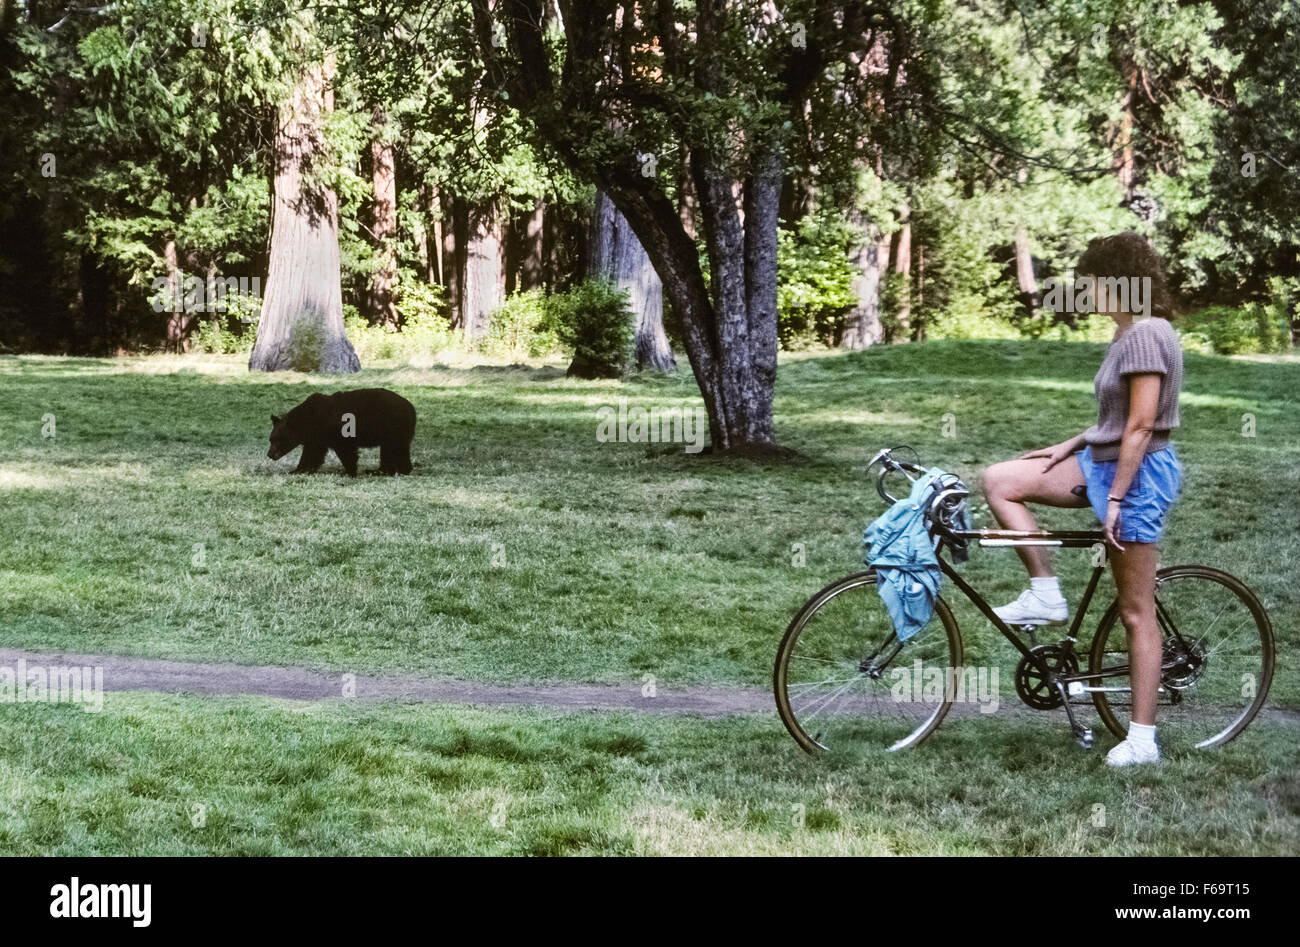 A female visitor on a bicycle pauses along a path to watch an American black bear (Ursus americanus) that is crossing - Stock Image